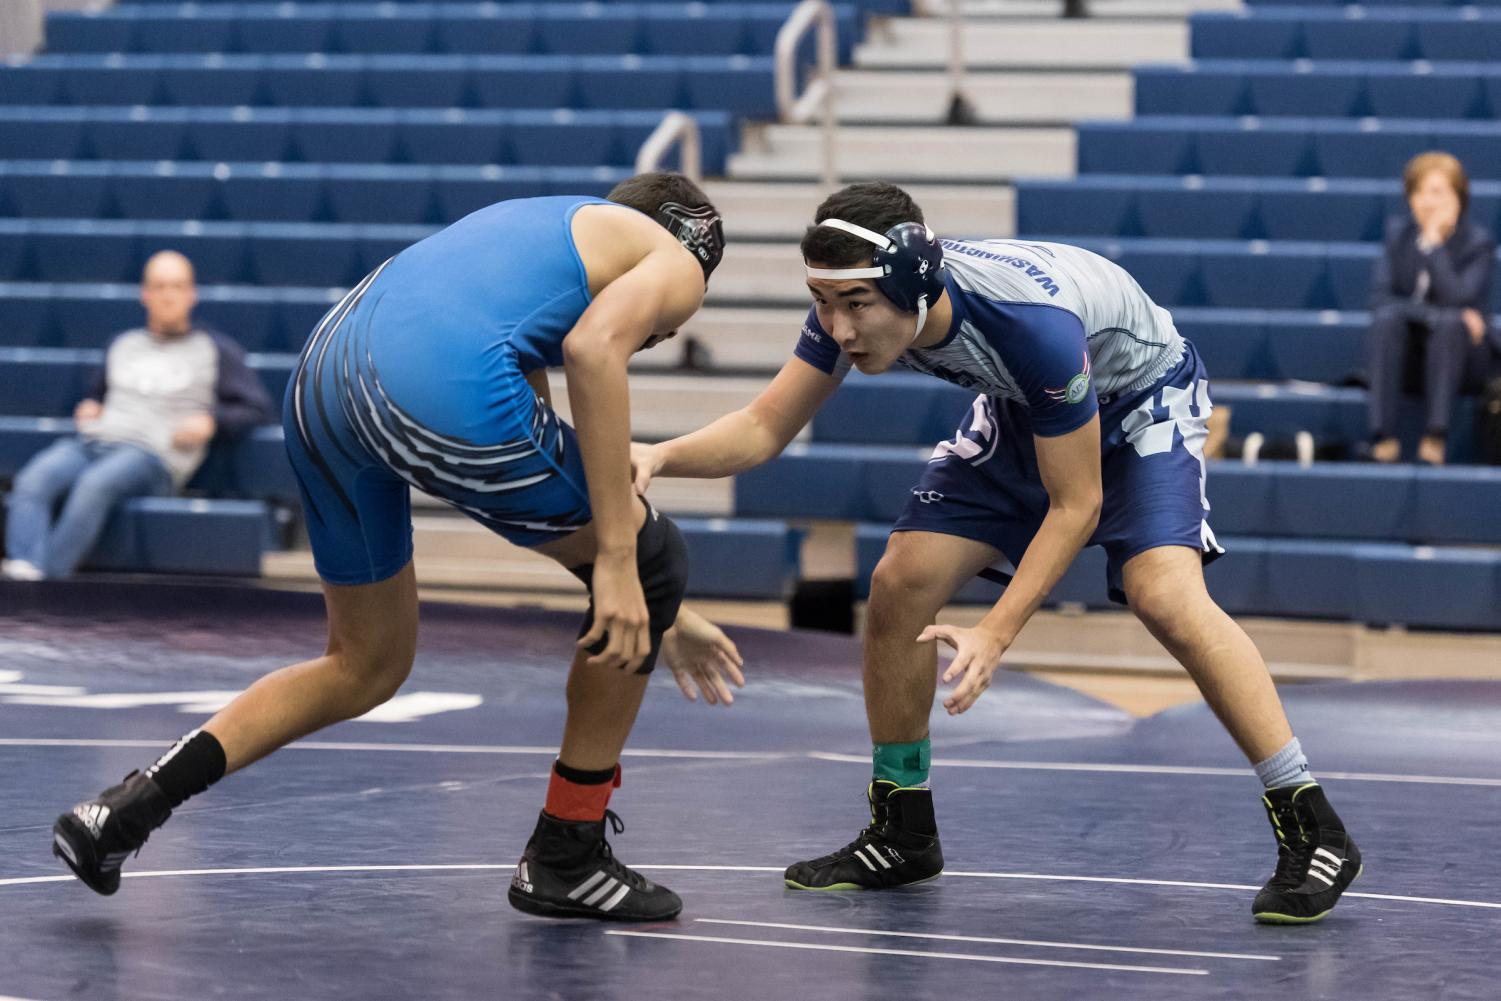 Senior Temmulen Jargalsaikhan focuses on pinning his opponent